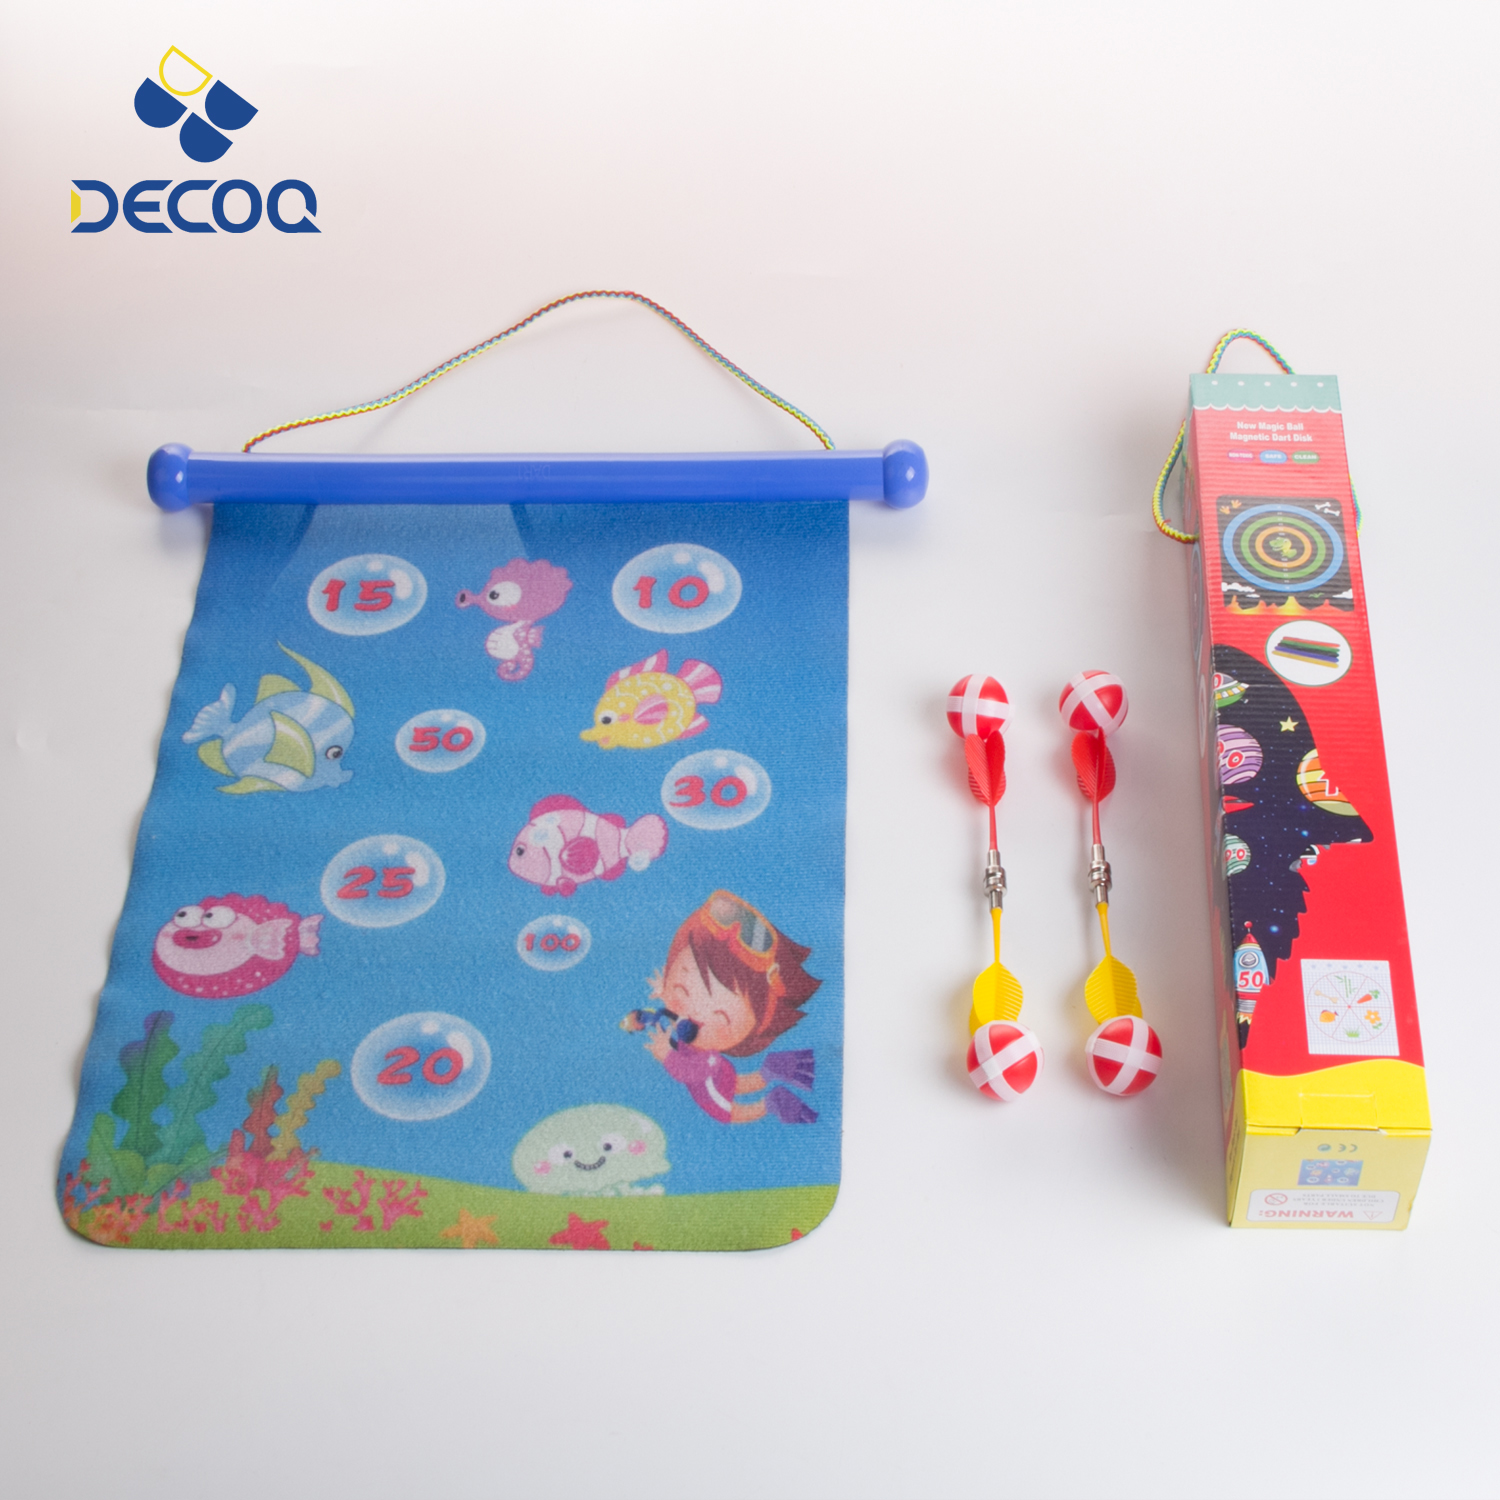 DECOQ Cheap Price Dart Board Game Set Wholesale With Magnetic Dart